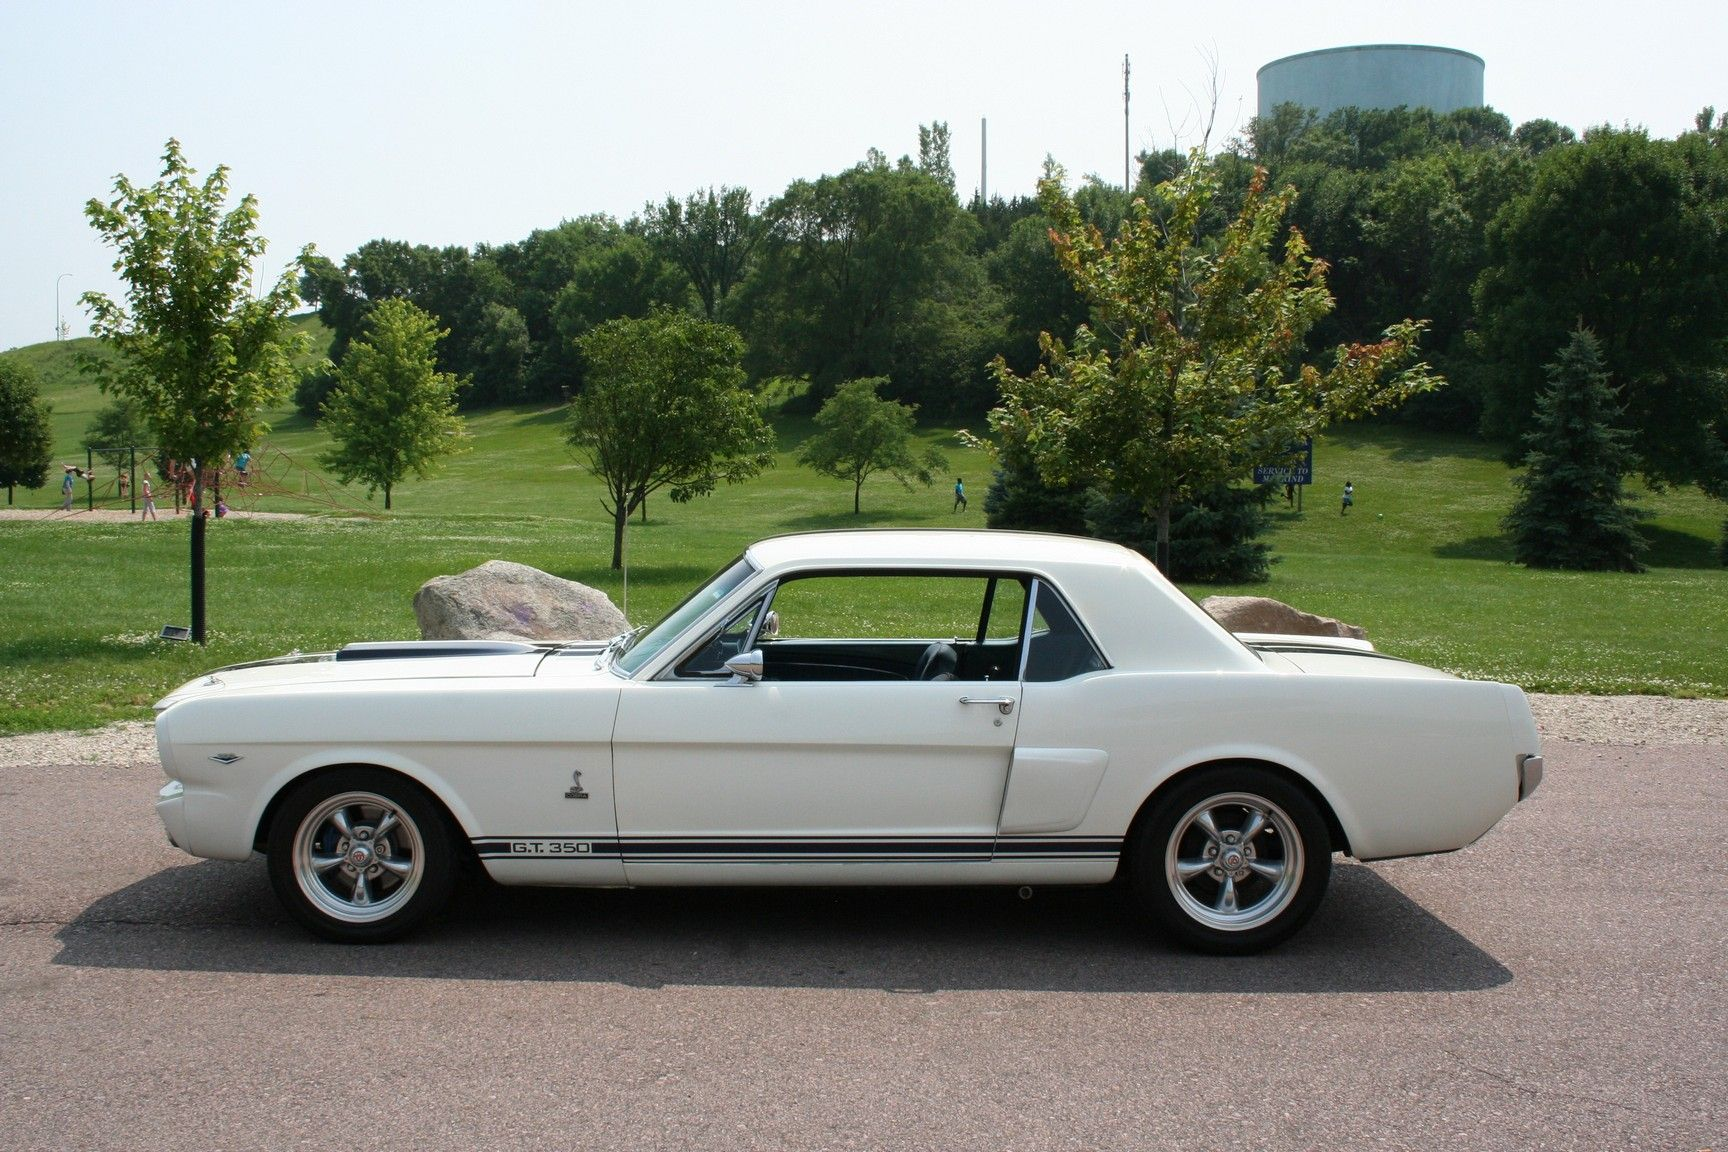 1965 Ford Mustang 2 Door For More Information Call 712 255 3000 Ford Mustang Mustang Ford Mustang For Sale